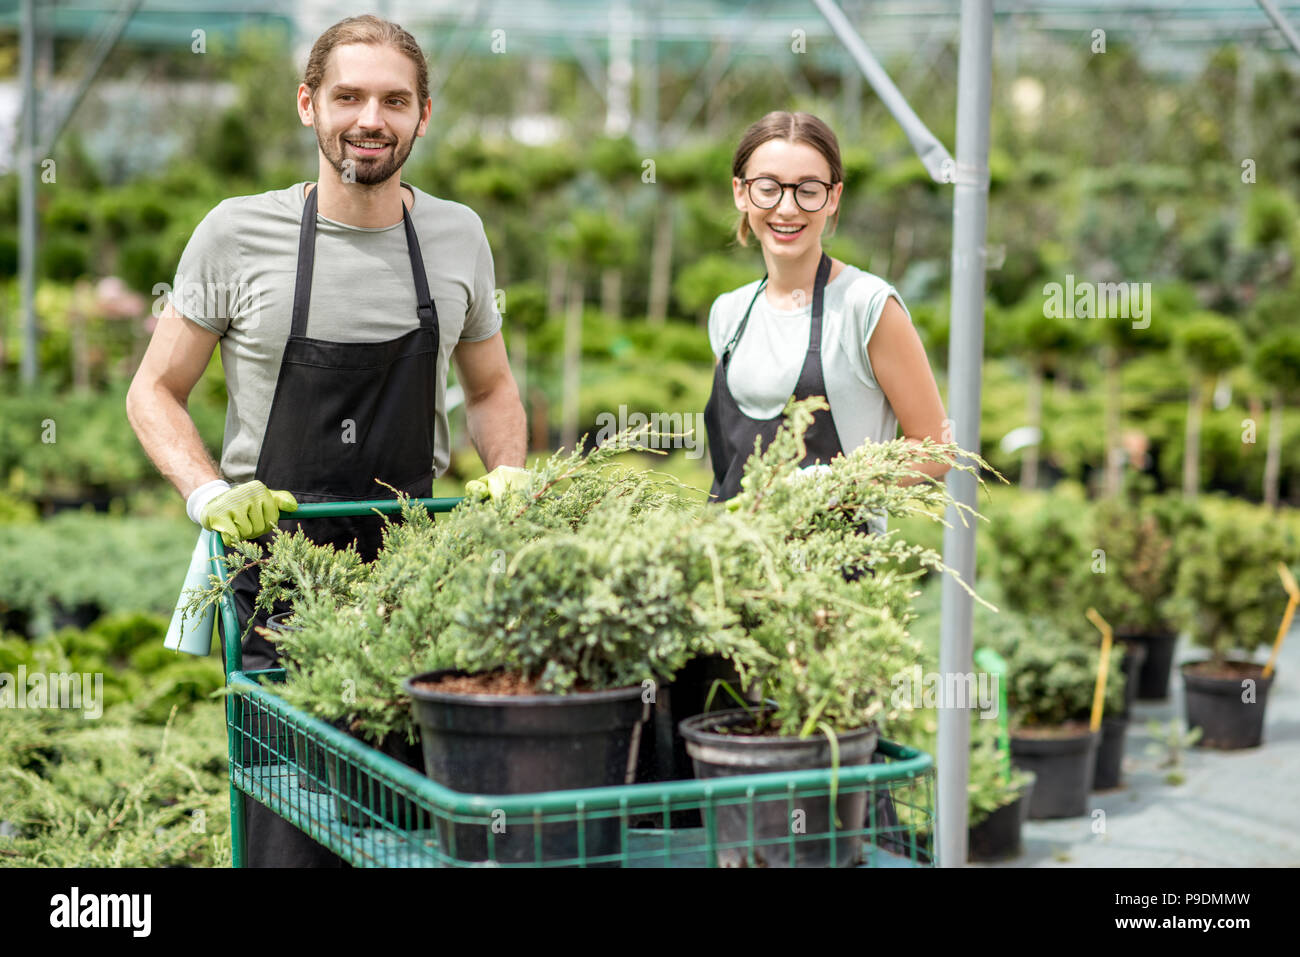 Workers with shopping cart in the greenhouse Stock Photo